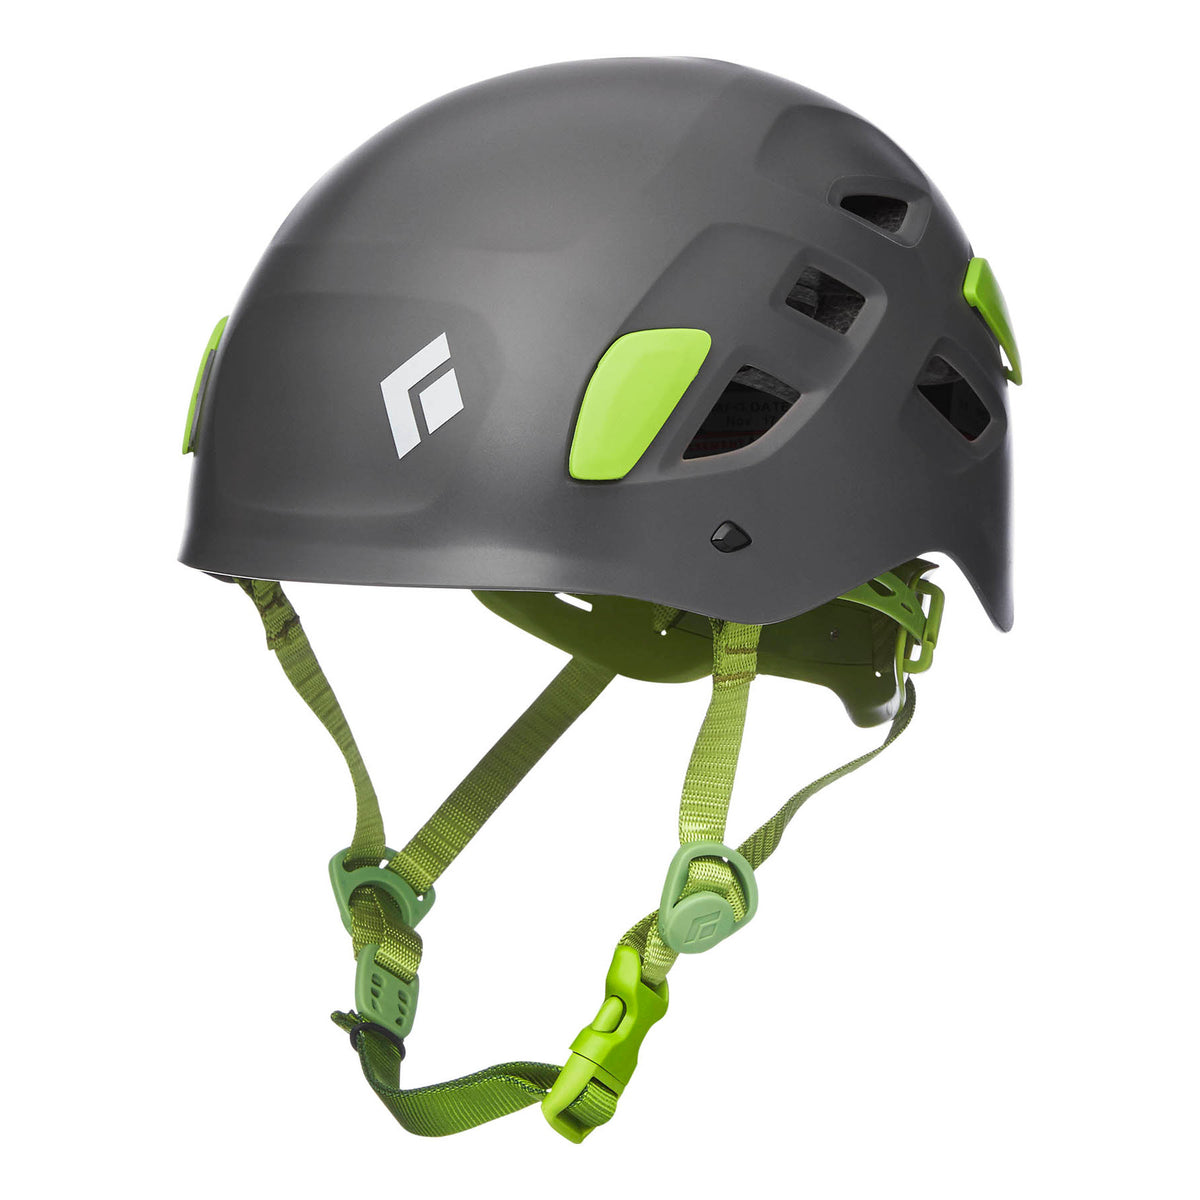 Black Diamond Half Dome climbing helmet, front/side view in grey colour with green chin strap